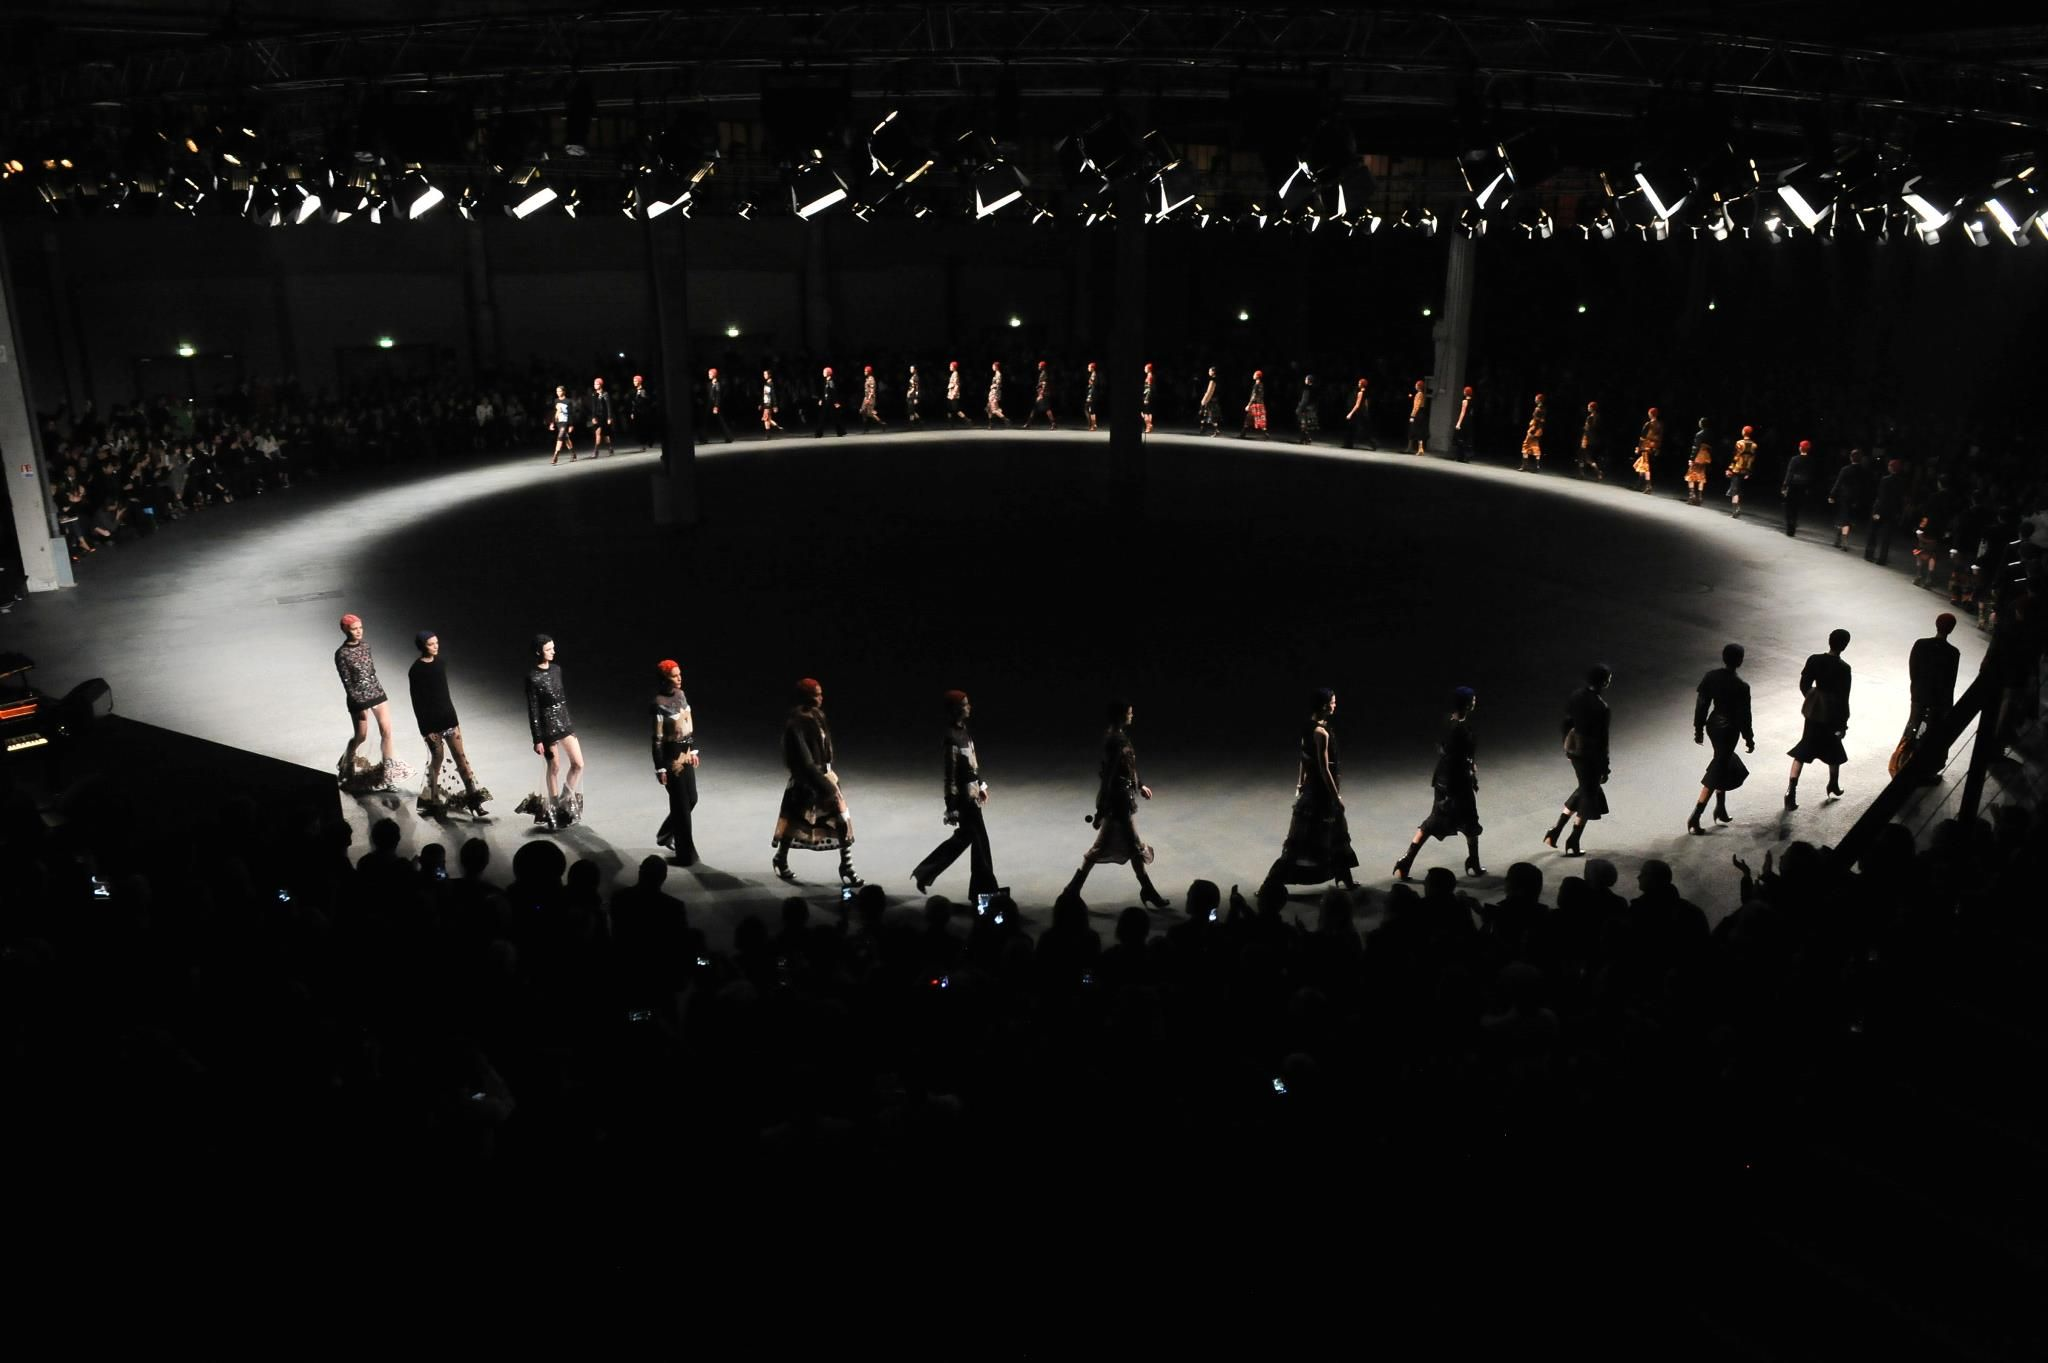 Givenchy F W 2013 Fashion Show Stage Design Runway Fashion Fashion Model Photography Catwalk Design